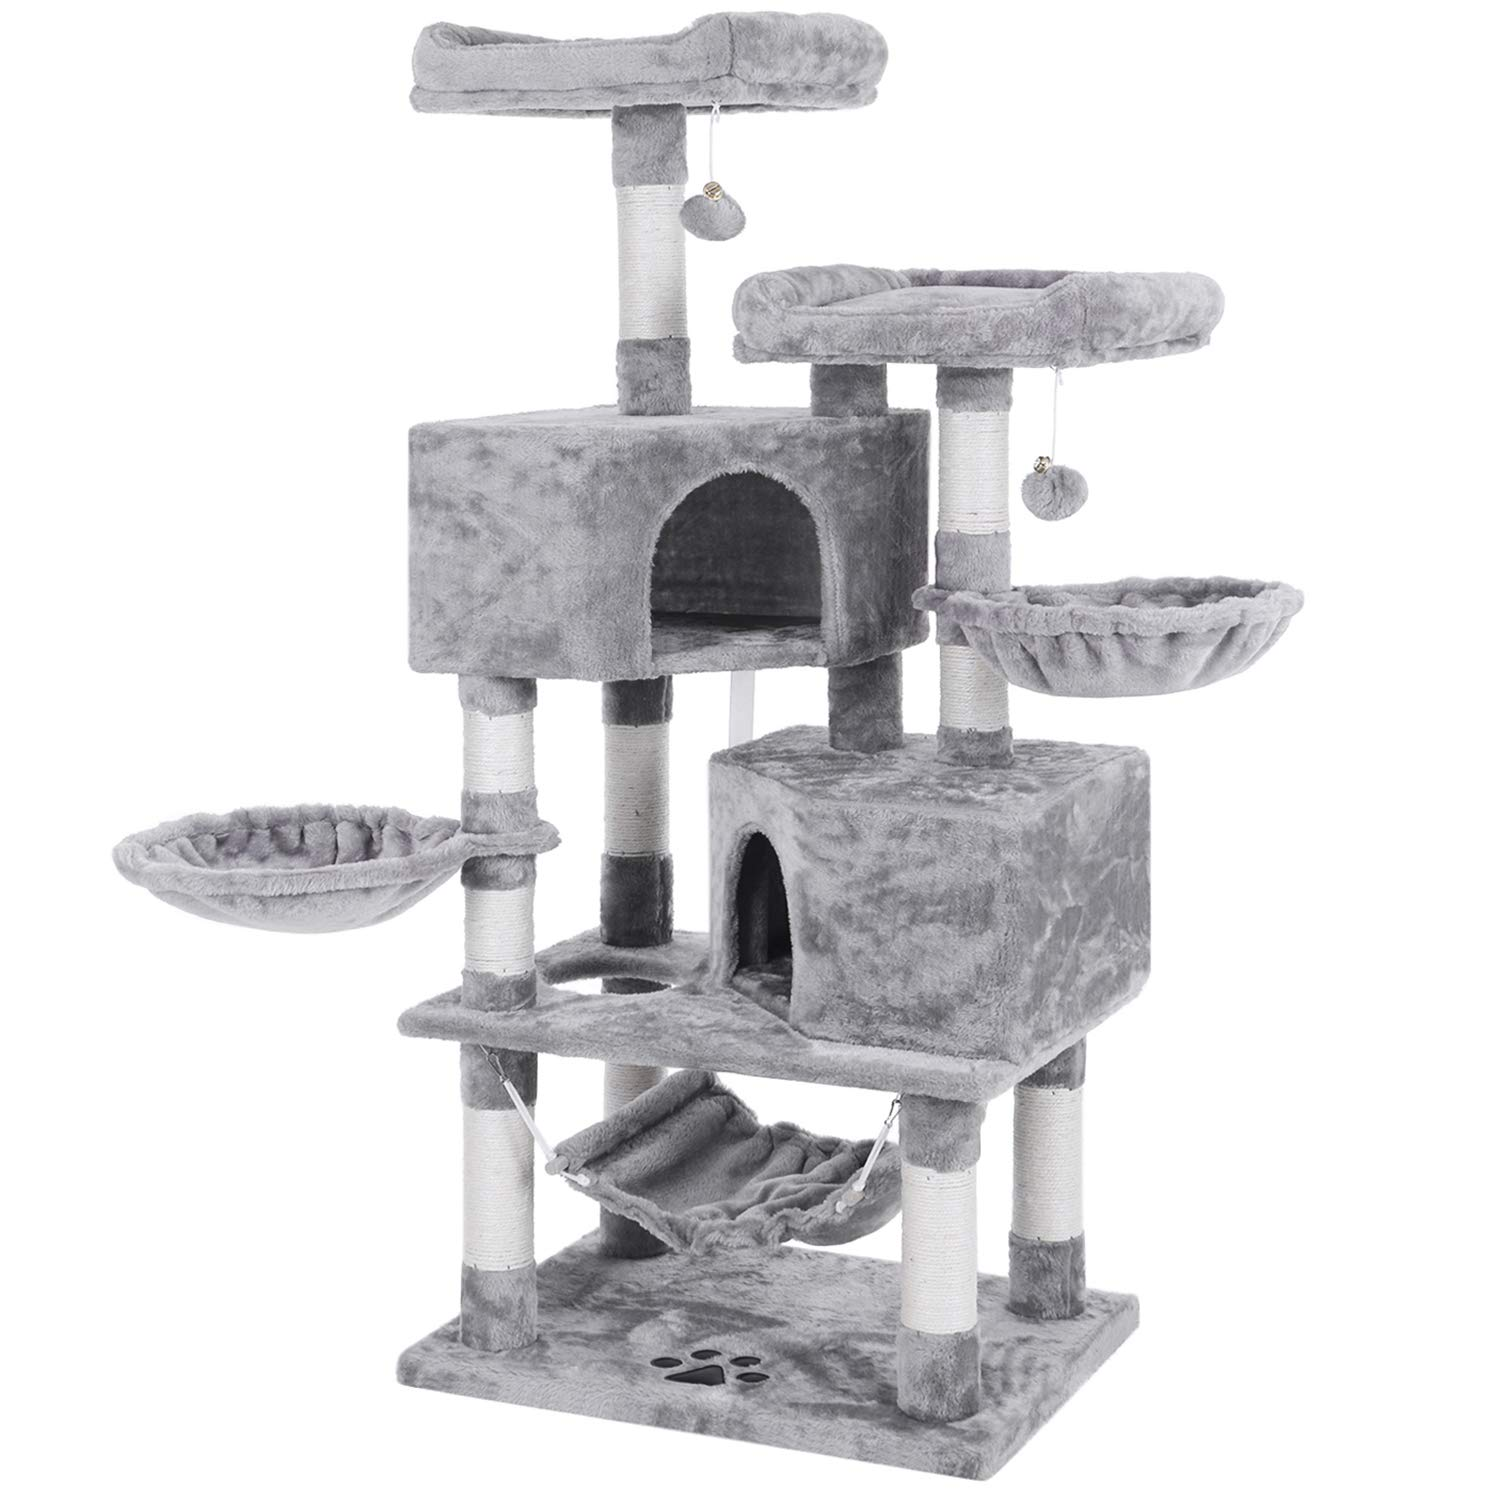 BEWISHOME Multi-Level Cat Tree Condo with Sisal Scratching Posts, Perches, Houses, Hammock and Baskets, Cat Tower Furniture Kitty Activity Center Kitten Play House Light Grey MMJ05G by BEWISHOME